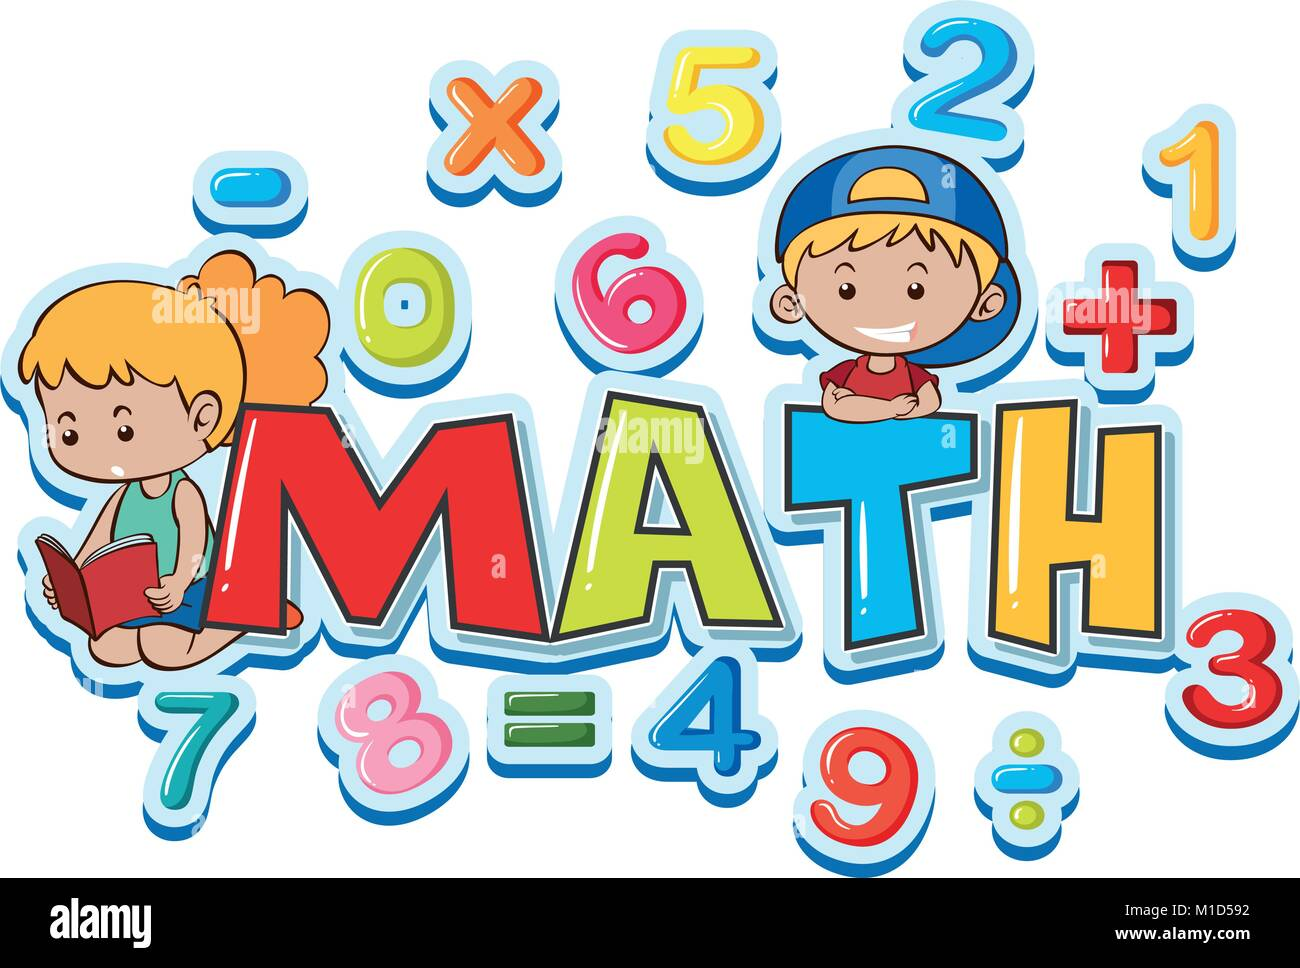 font design for word math with many numbers and kids illustration